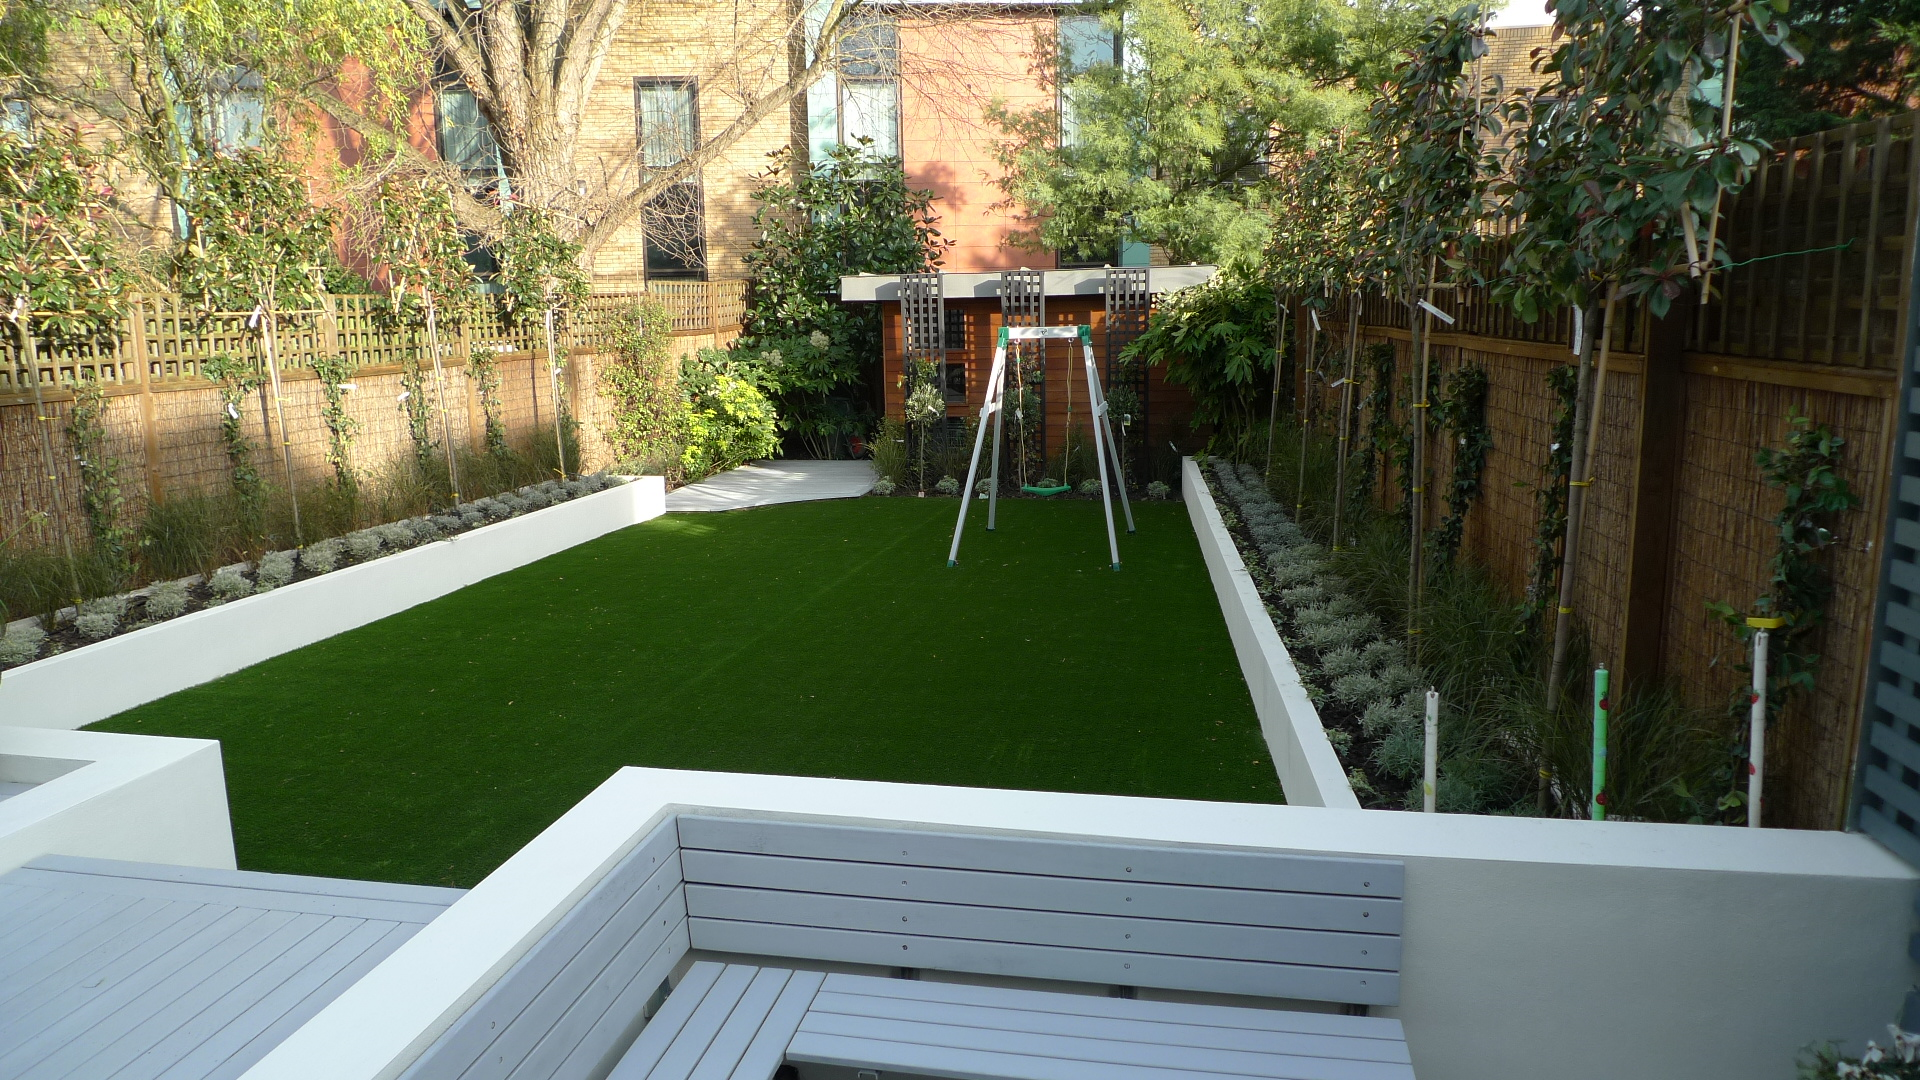 Modern garden design ideas london london garden design Modern front garden ideas uk